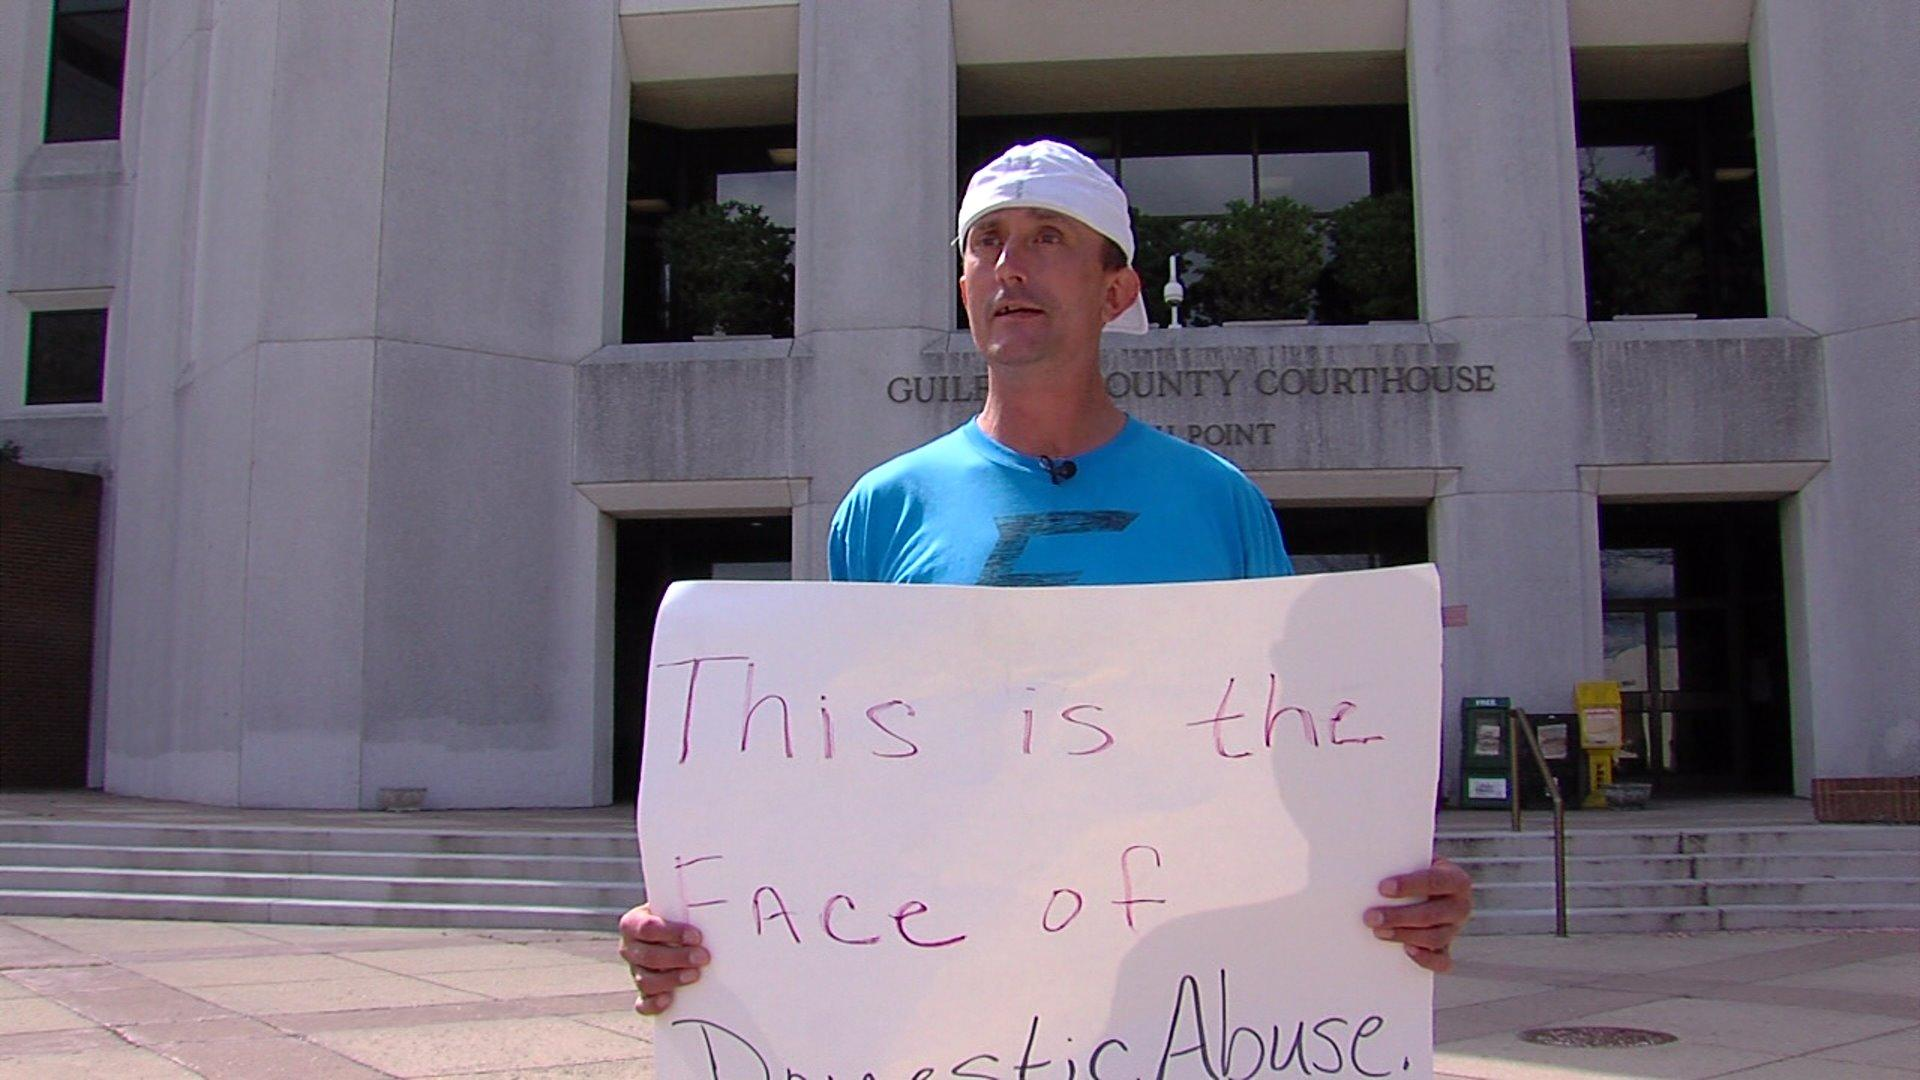 Judge Orders Public Humiliation for Domestic Abusers